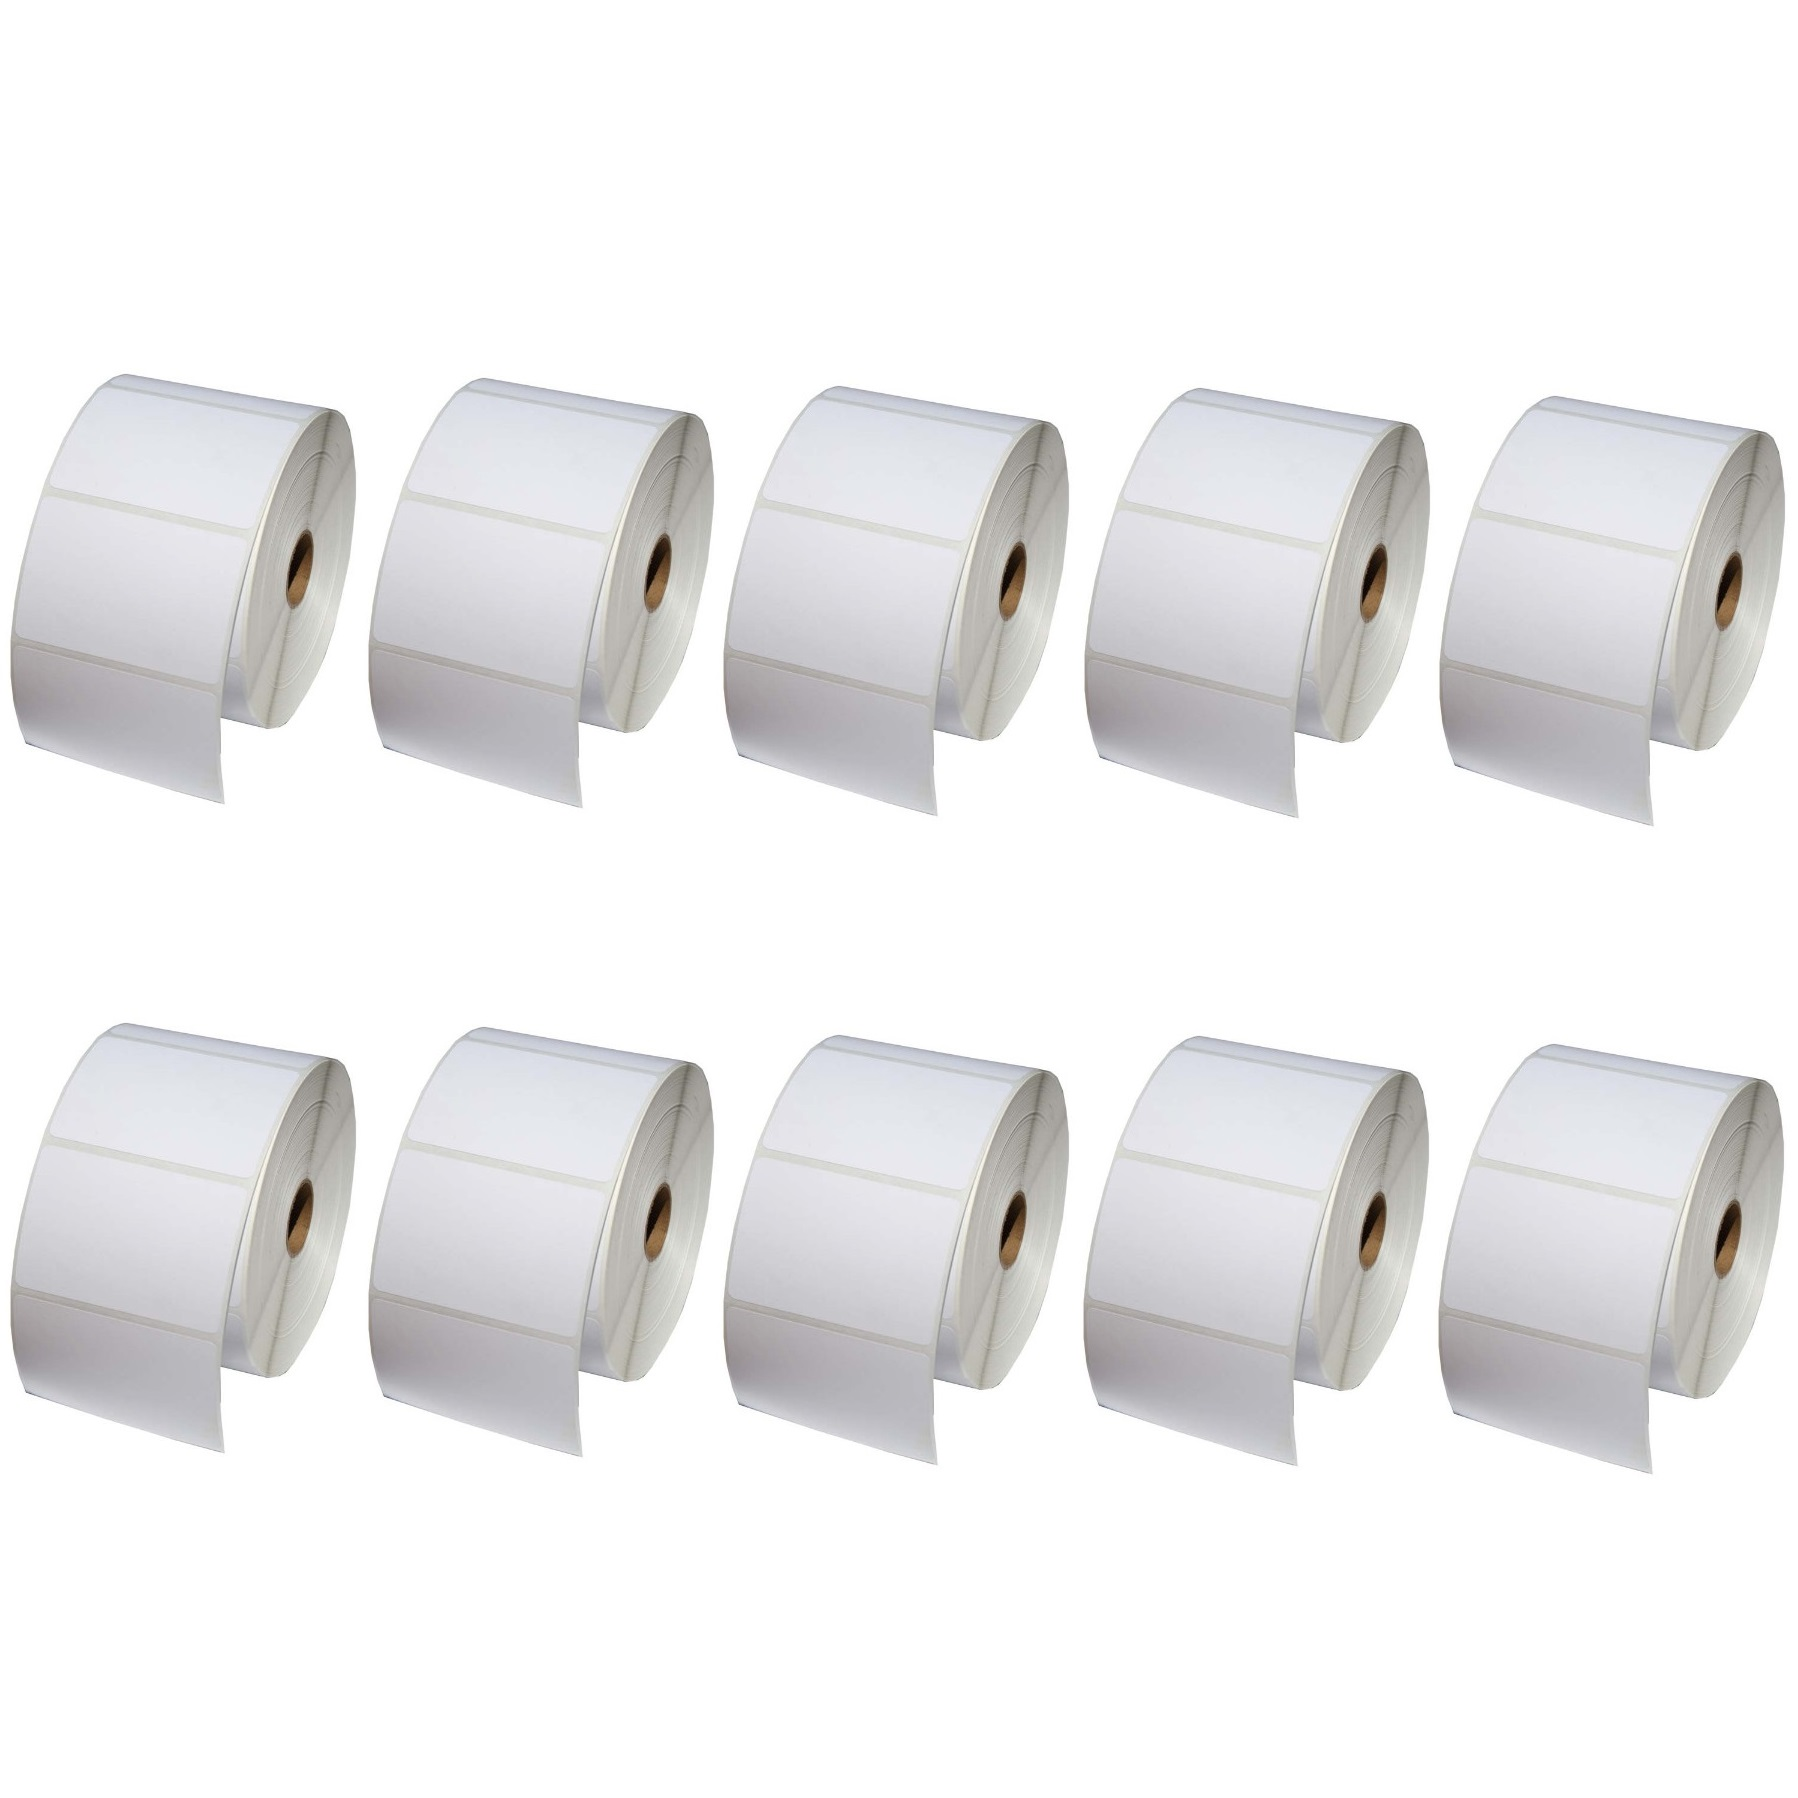 View 100x50 Direct Thermal Labels - 10 Rolls